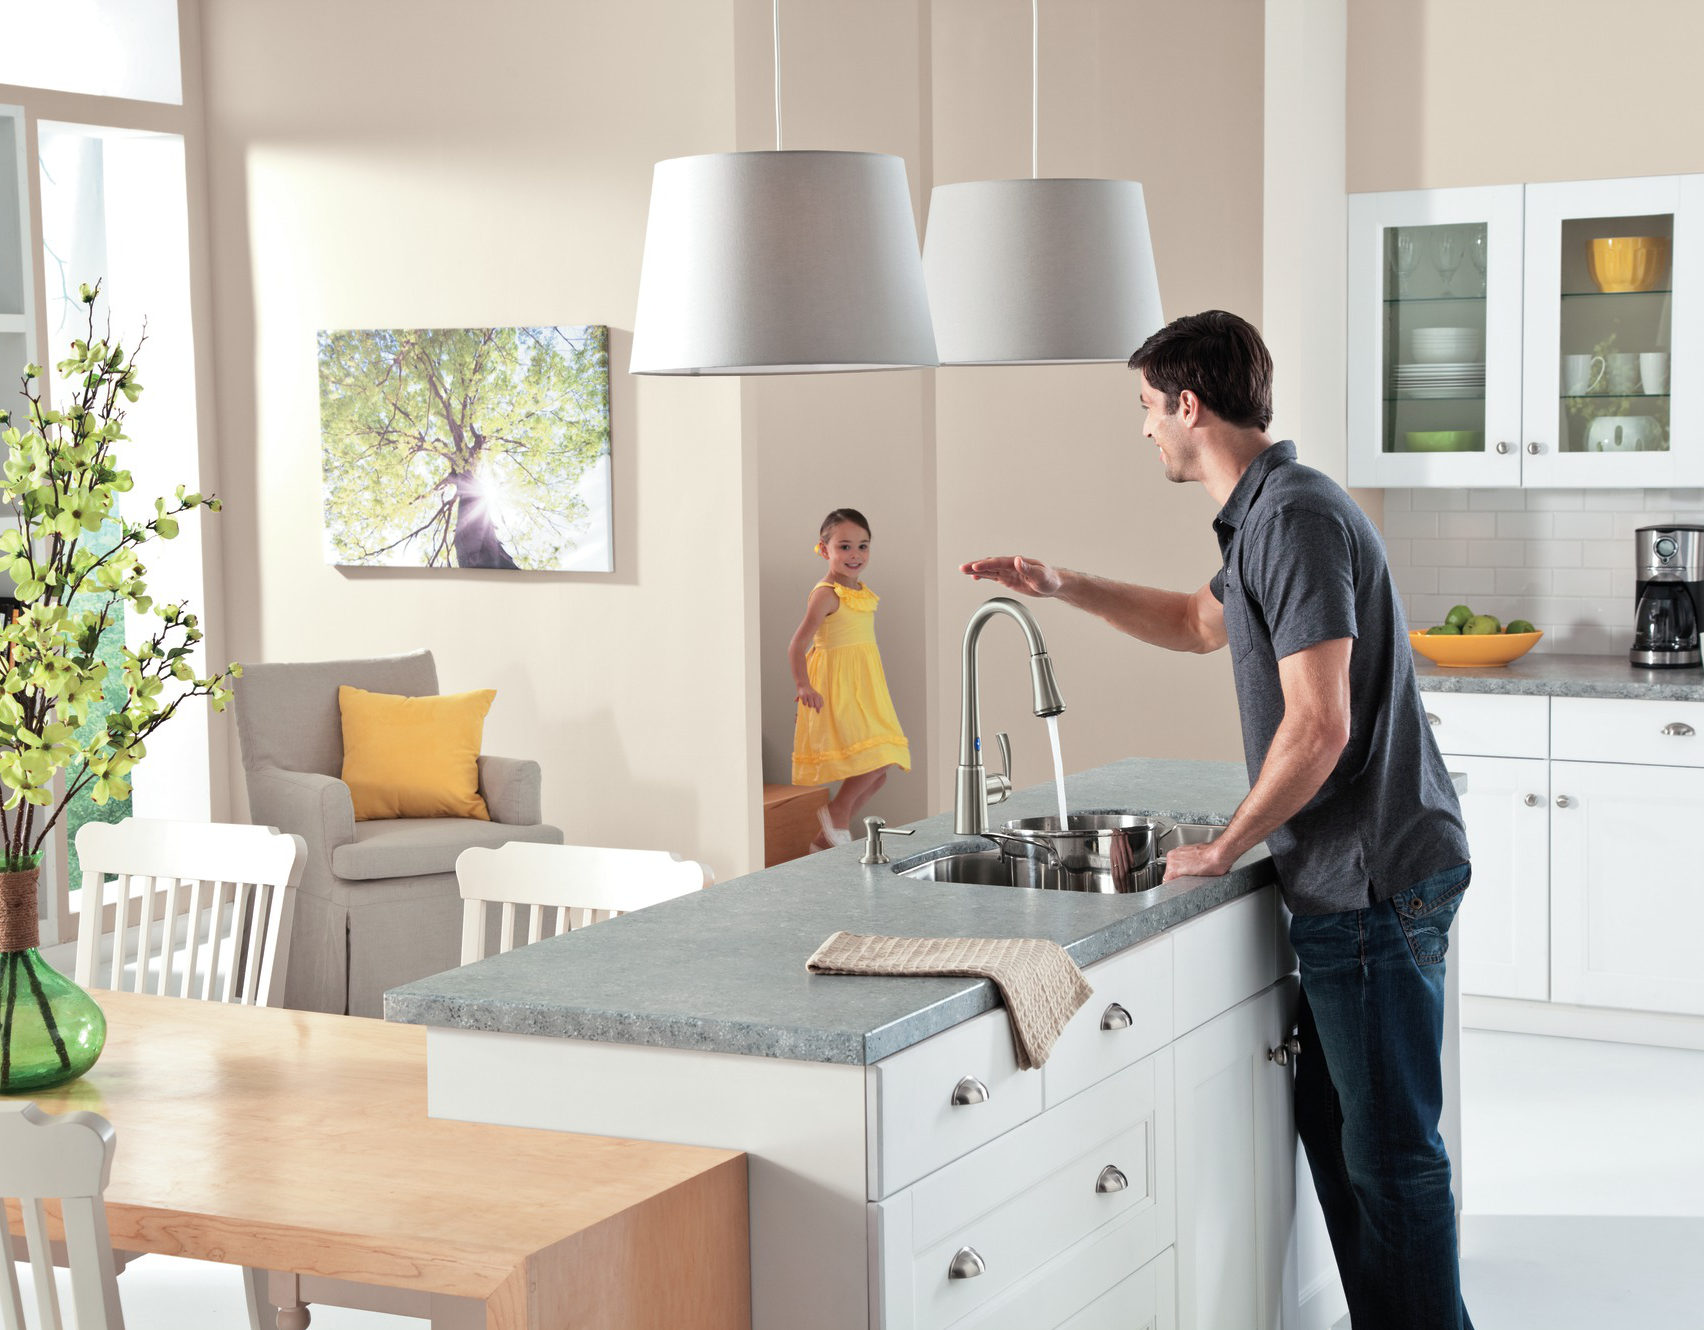 Delaney motionsense kitchen sensor faucet - Moen via Atticmag